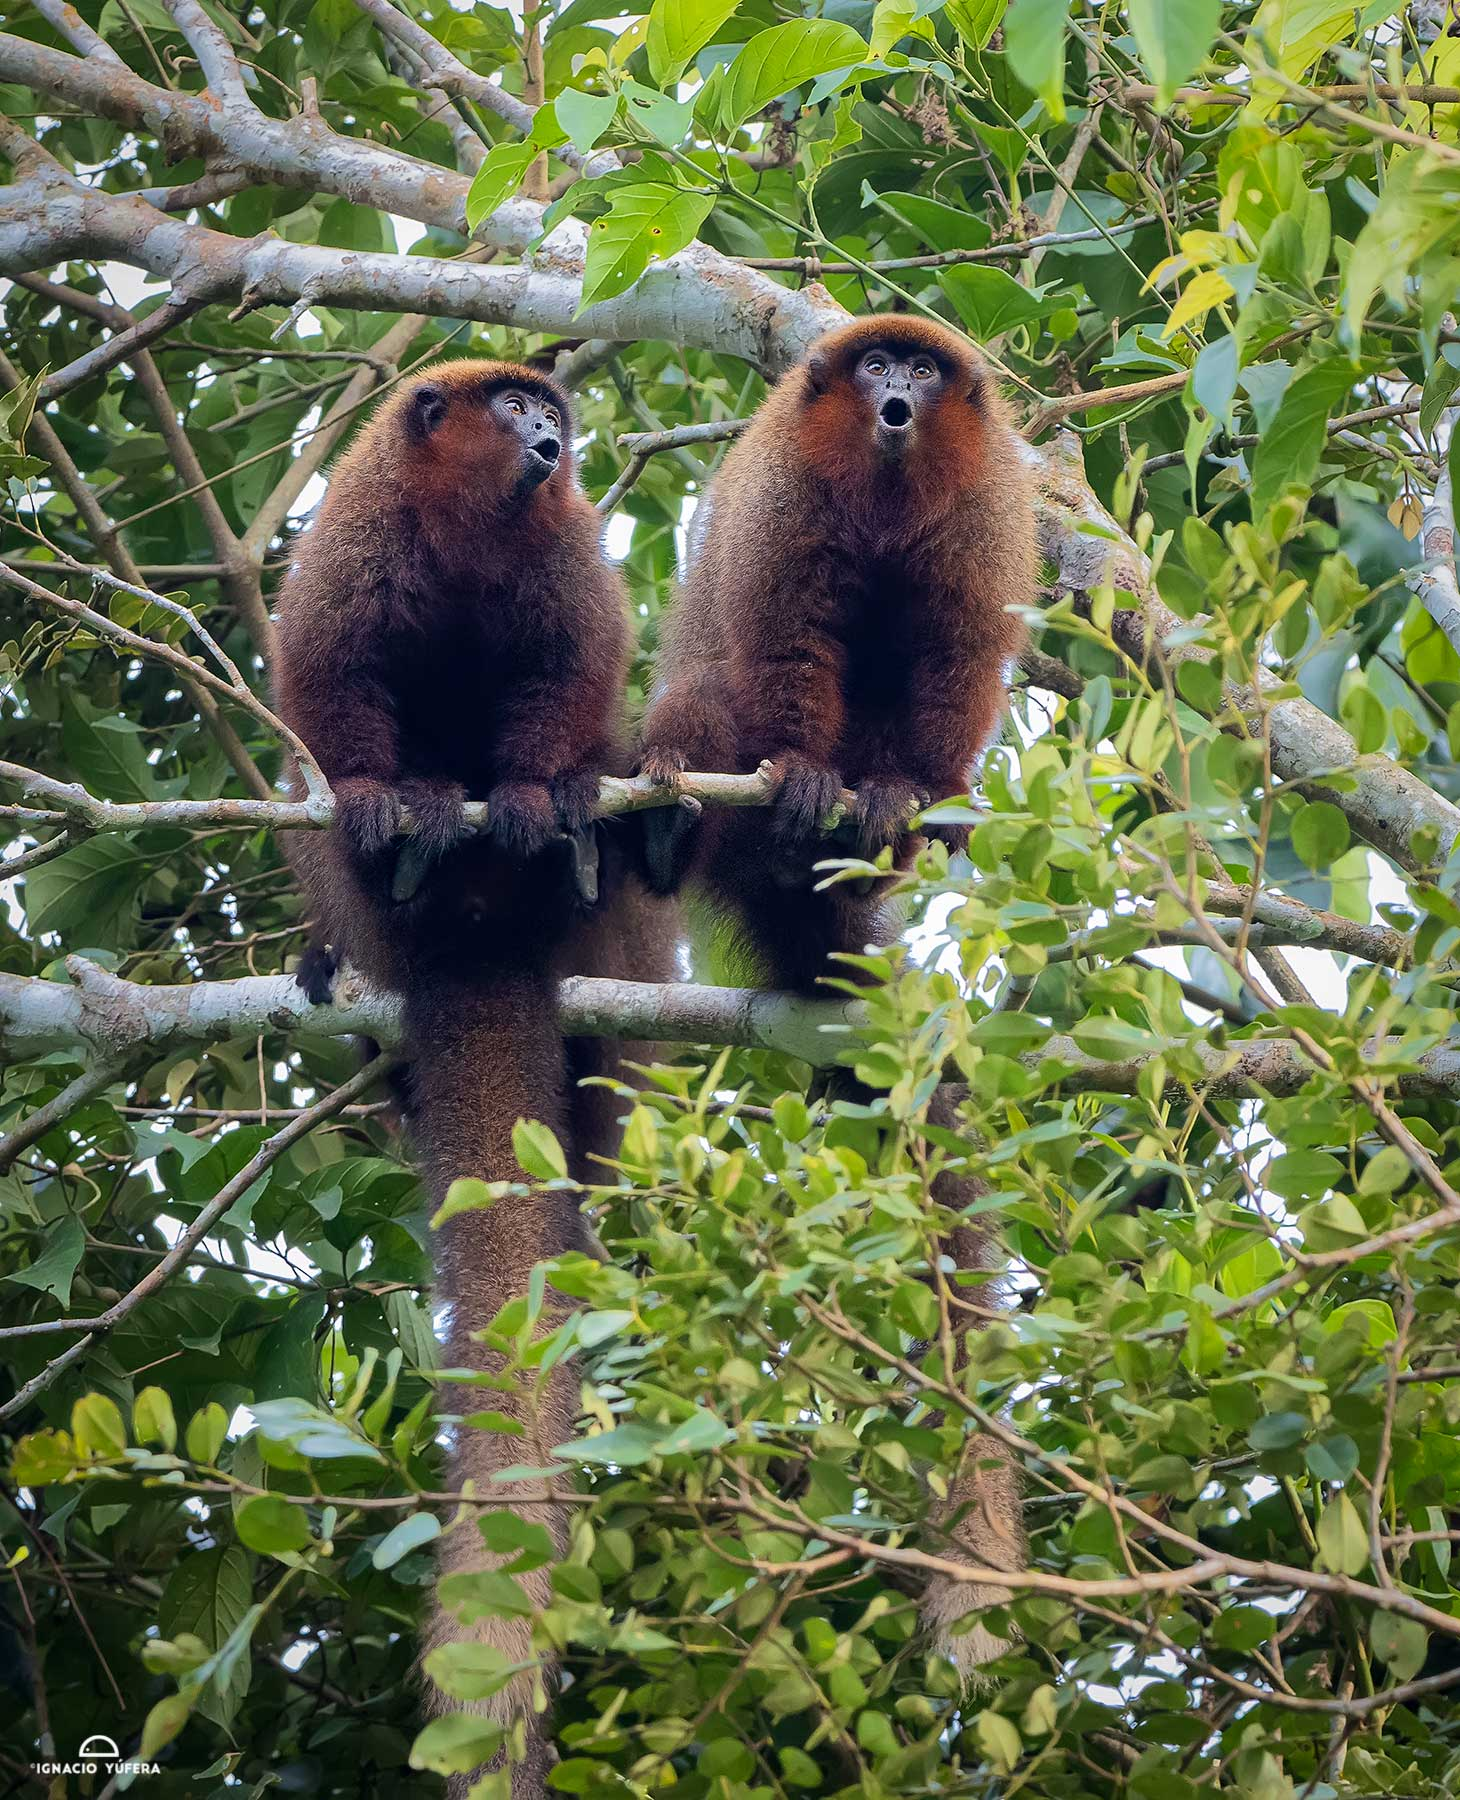 Brown Titi Monkeys (Plecturocebus brunneus), calling to stake their territory, Madre de Dios, Peru